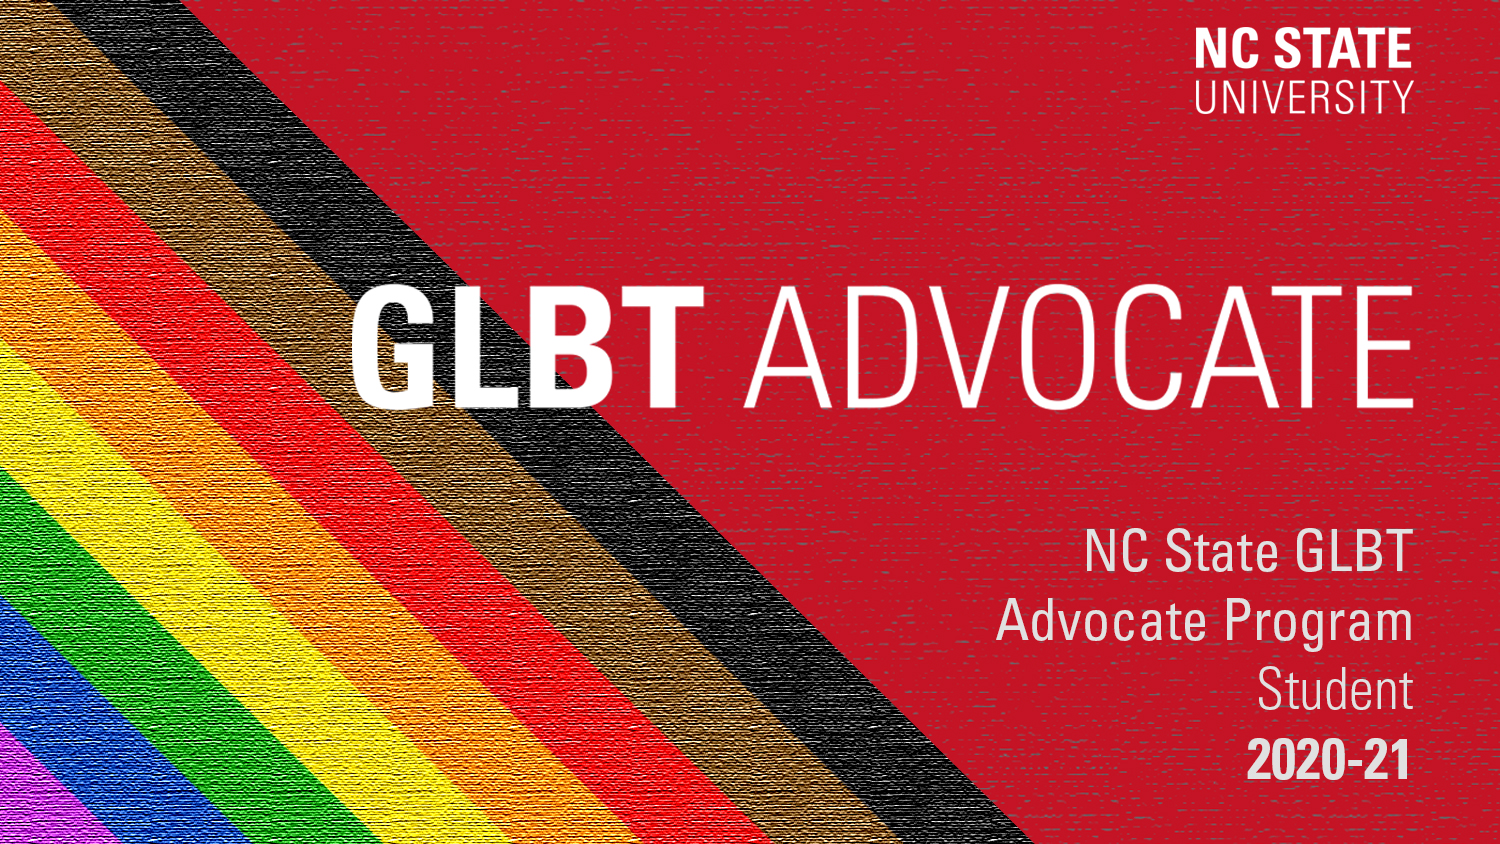 GLBT Student Advocate Program placard